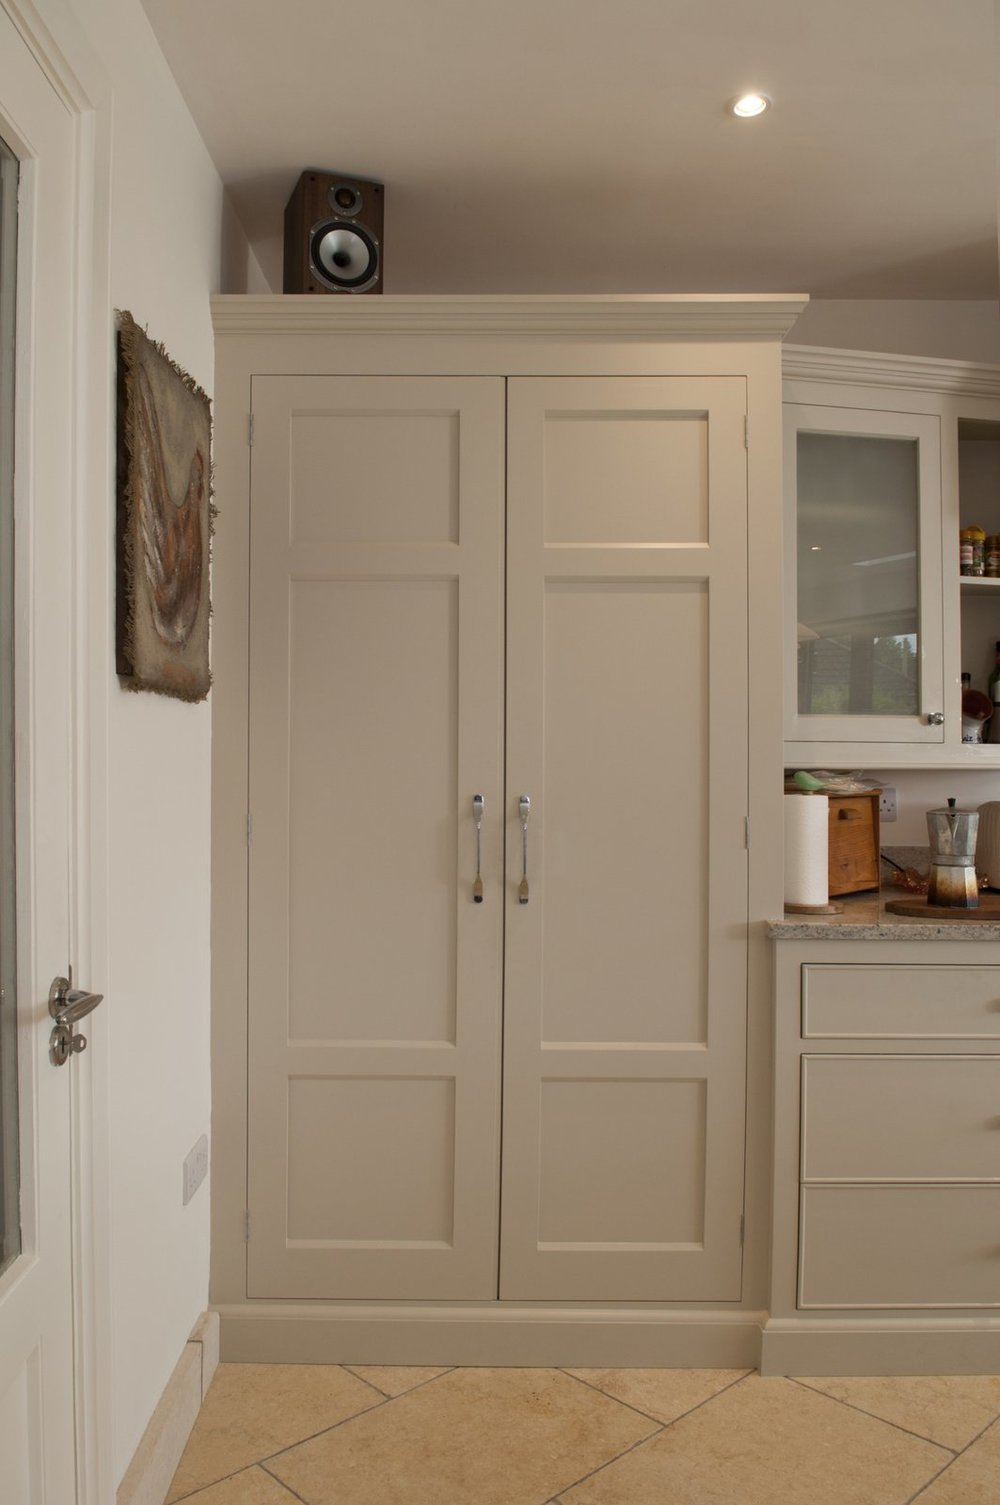 Kitchen storage cupboards handcrafted, Talisman Woodworks